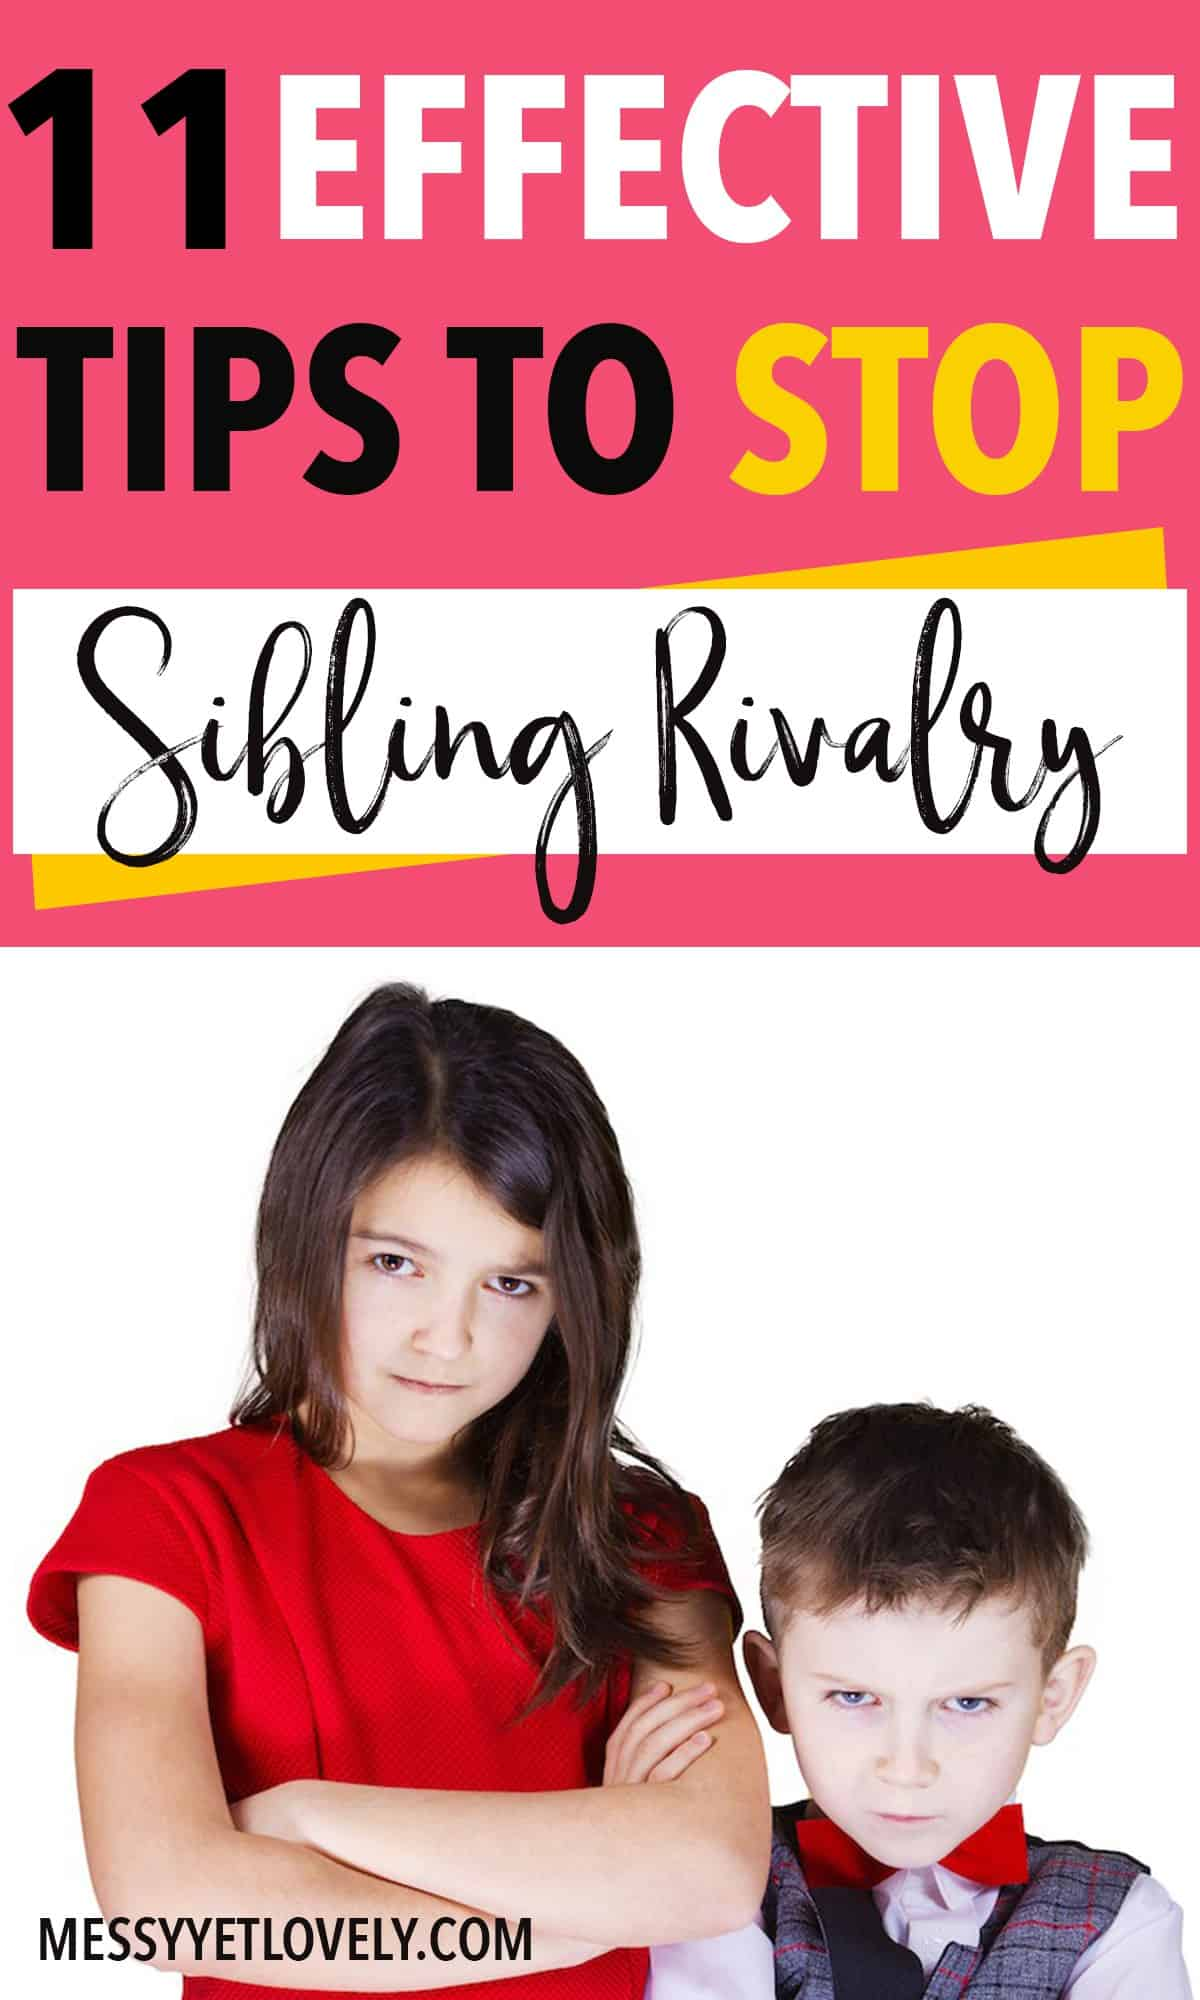 Is sibling rivalry making you insane? Don't worry! There are ways to deal with sibling rivalry effectively. Read this post to learn about strategies to help siblings get along with each other peacefully.